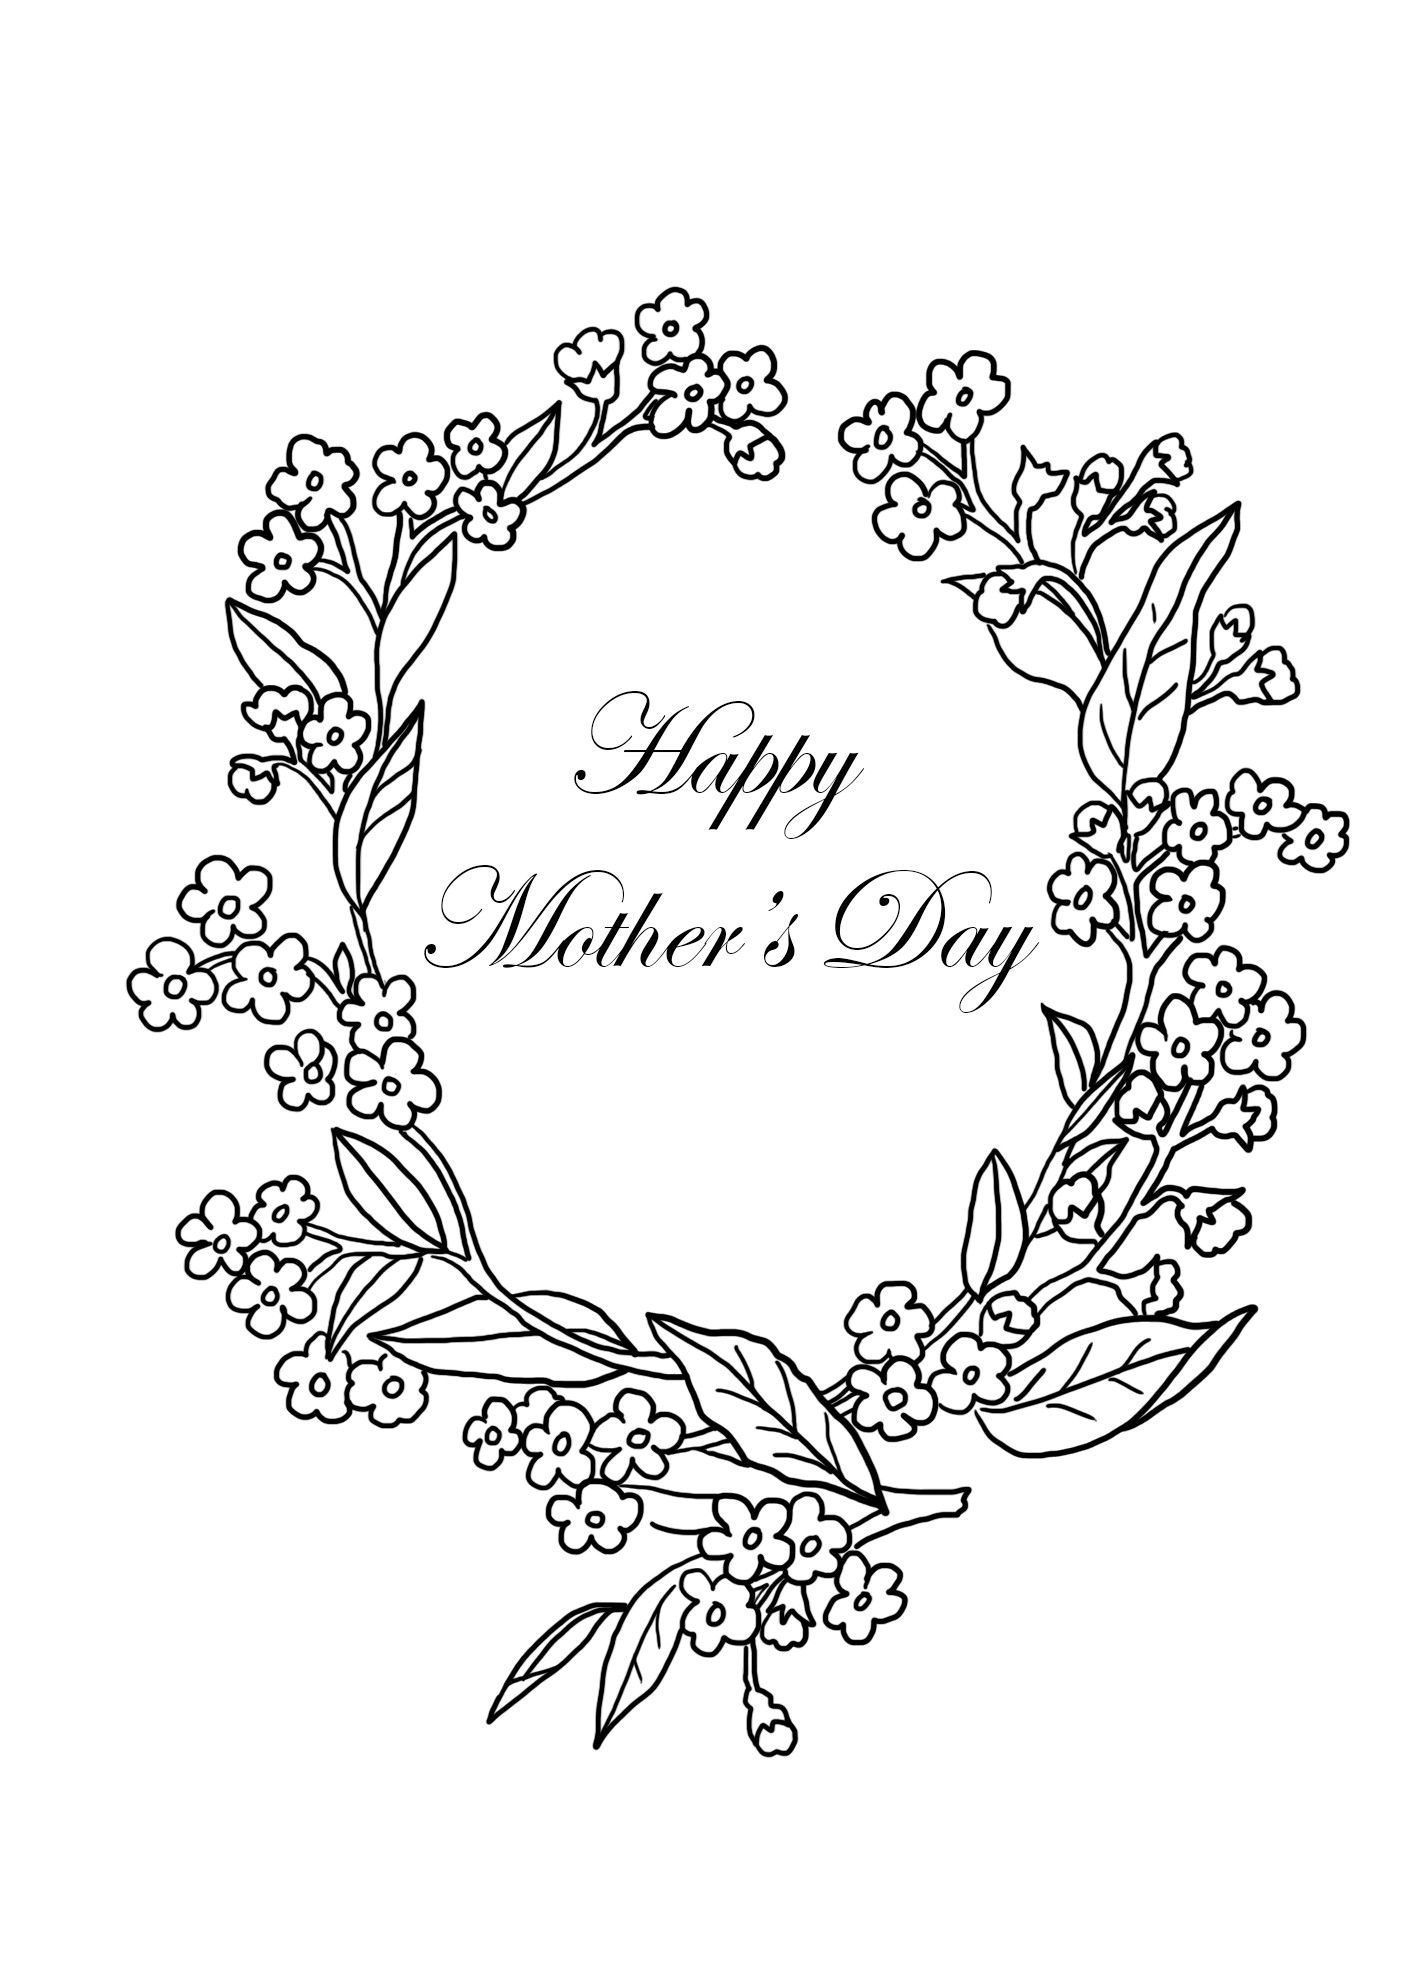 New Mothers Day Colouring Coloring Coloringpages